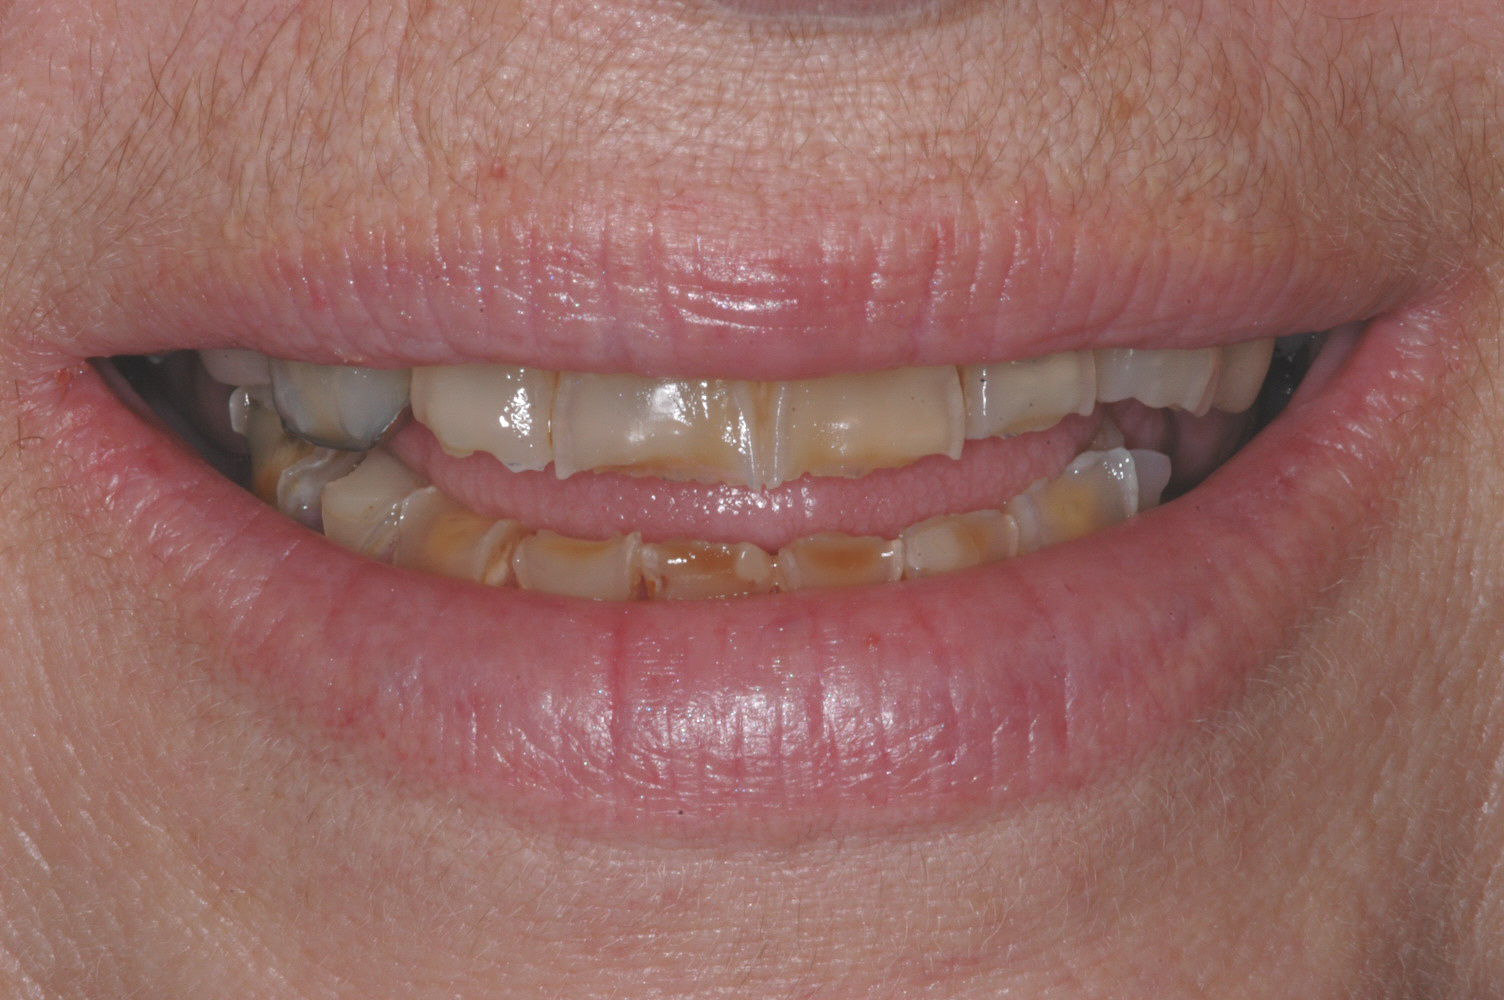 Our patient was a 60 year old female who presented with severe wear/chipping of the front teeth. She also desired an improvement in her smile